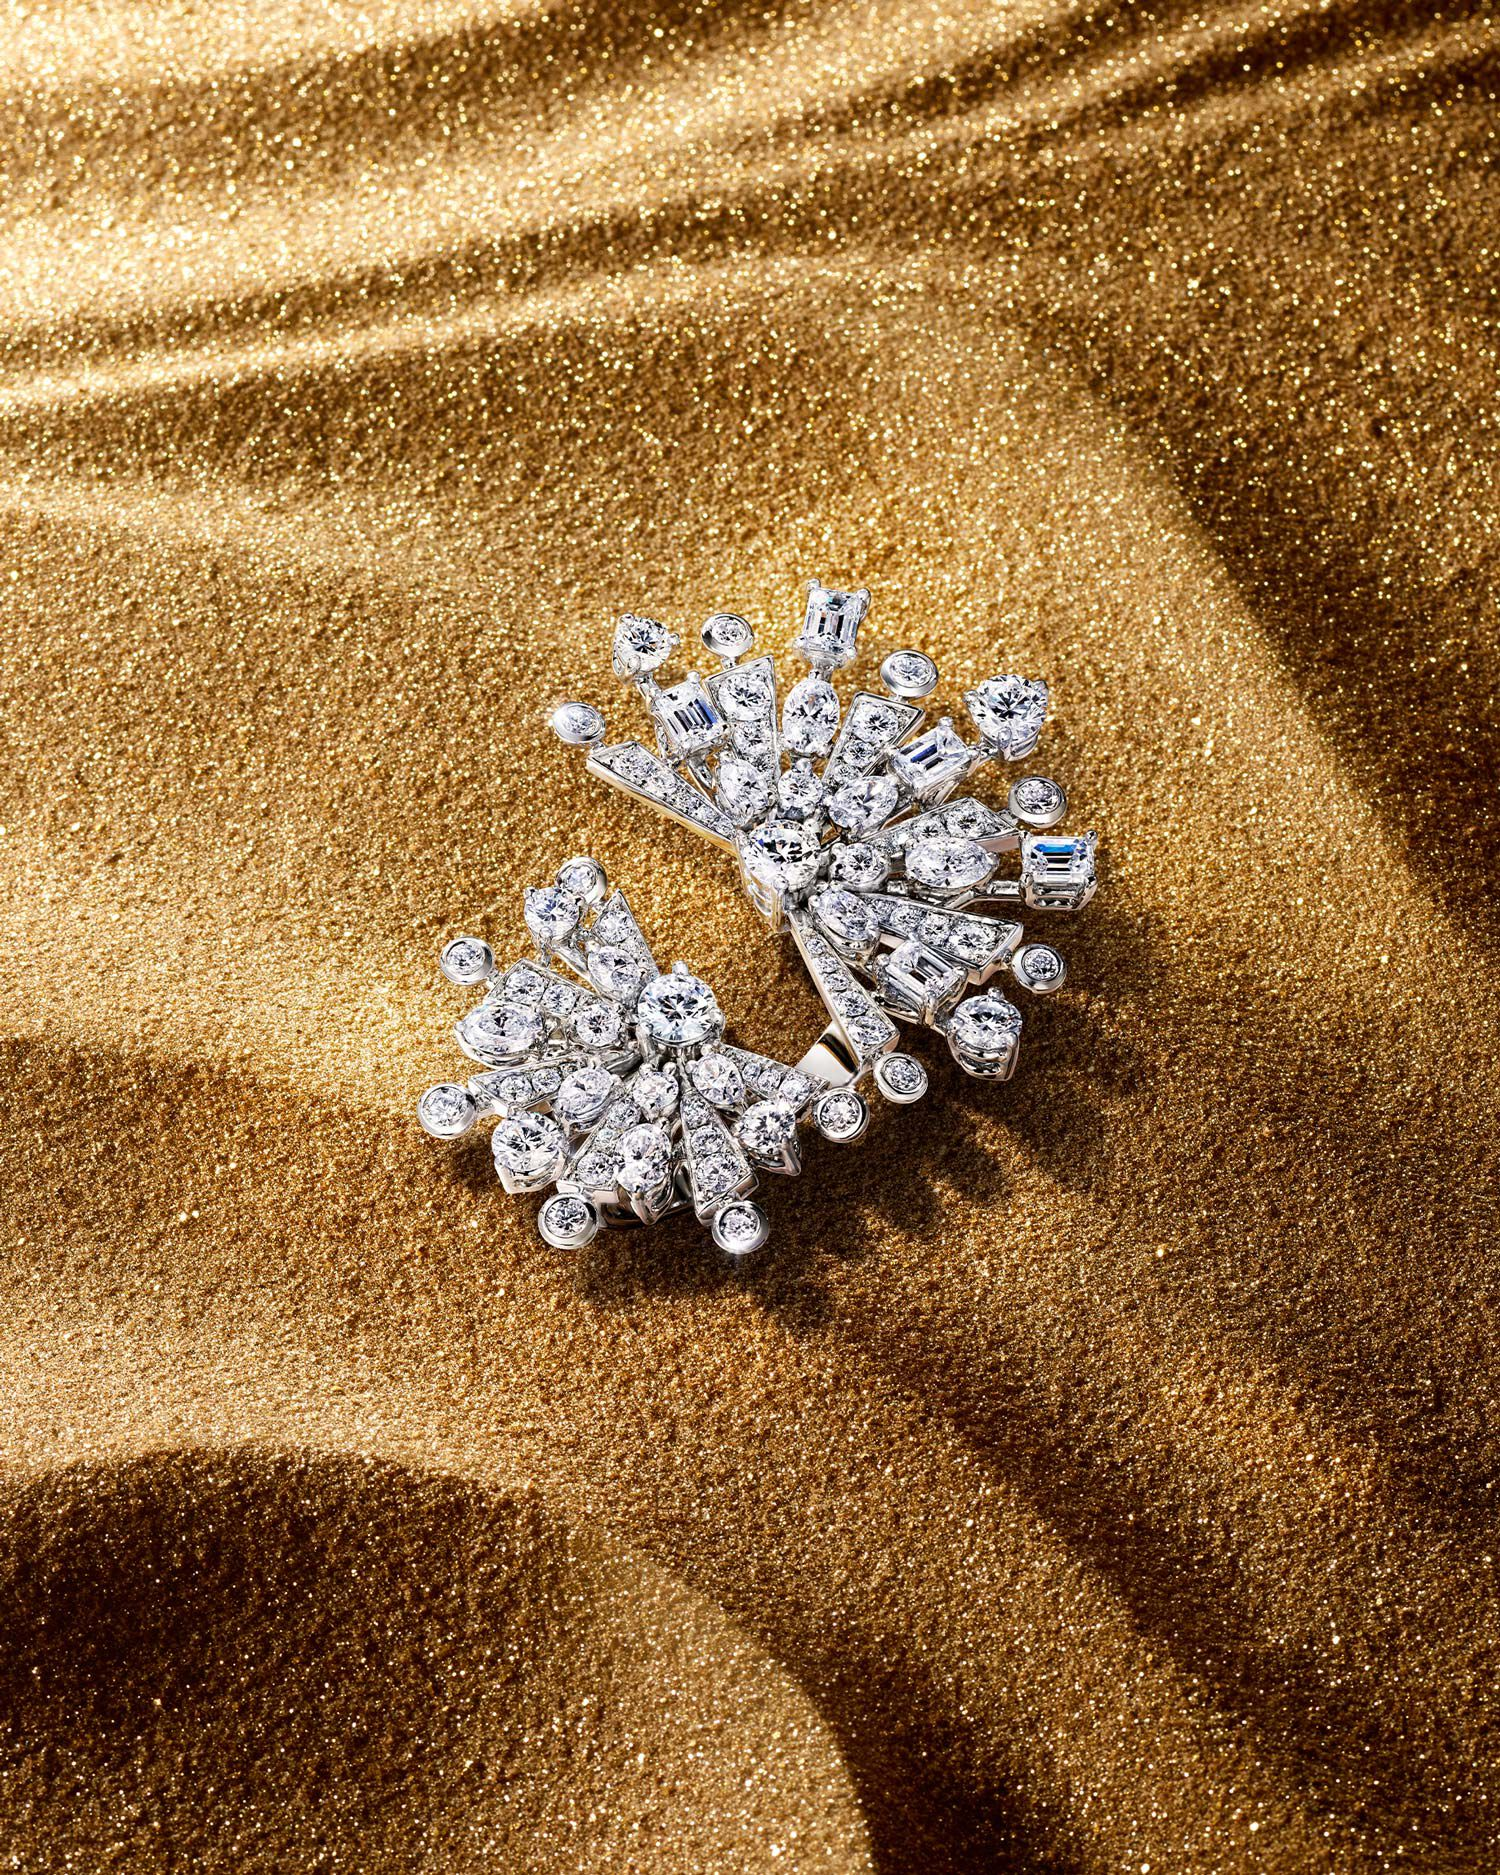 New Dawn diamond jewels from the Graff Tribal collection